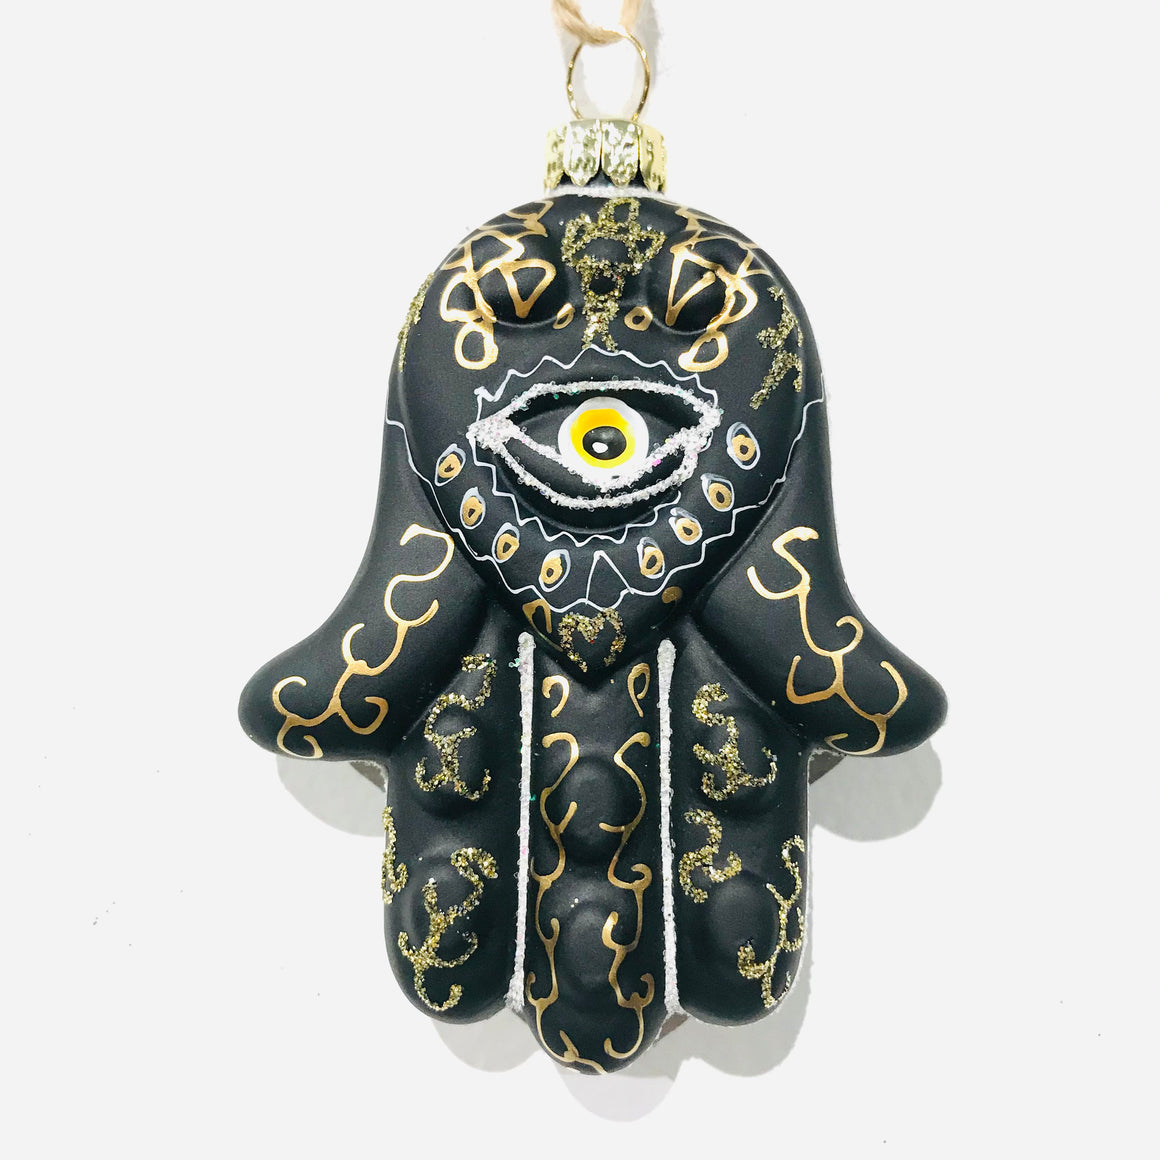 Hand of Fatima Ornament in Black